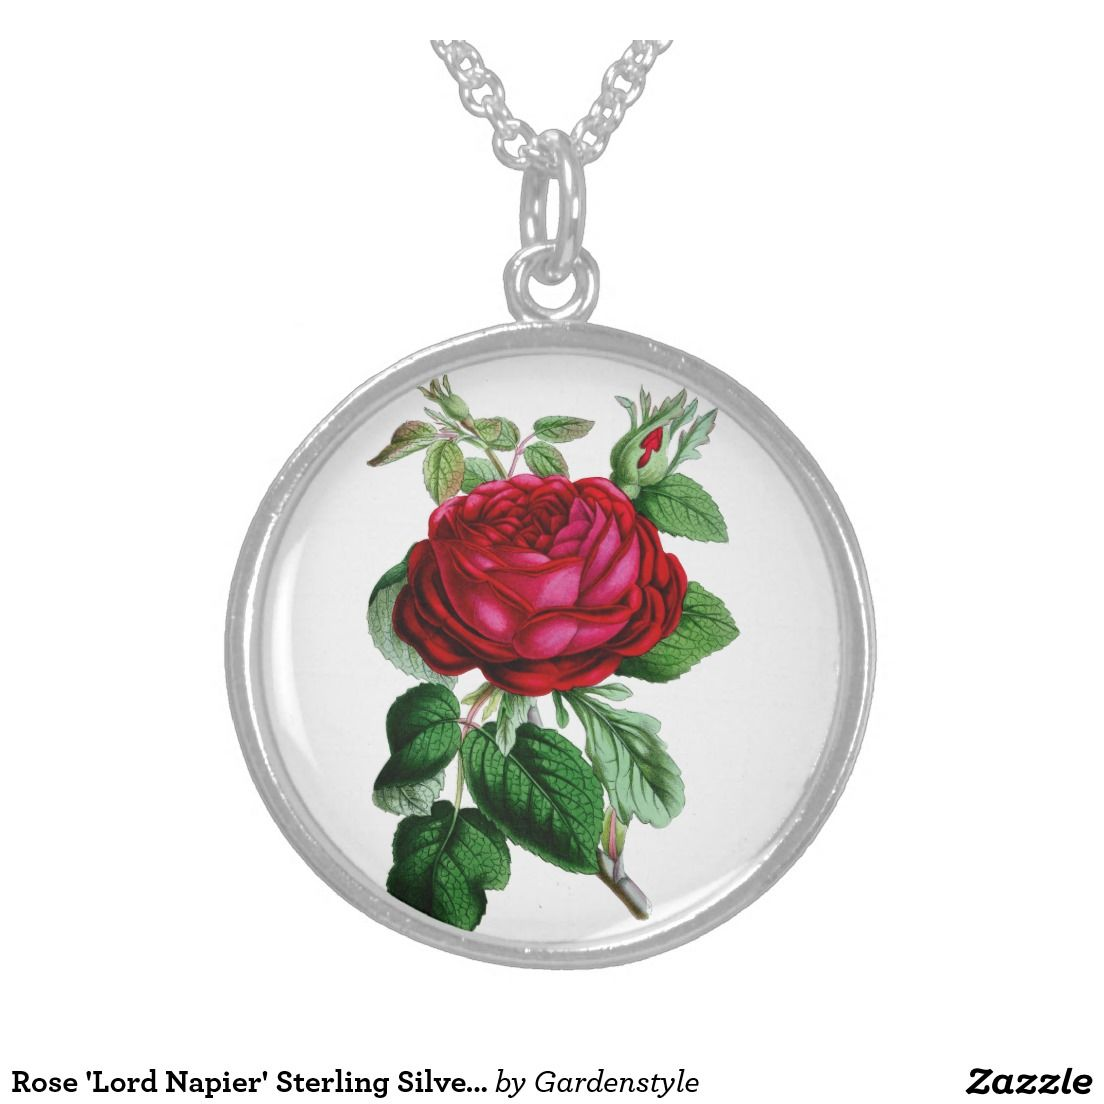 Rose 'Lord Napier' Sterling Silver Round Necklace